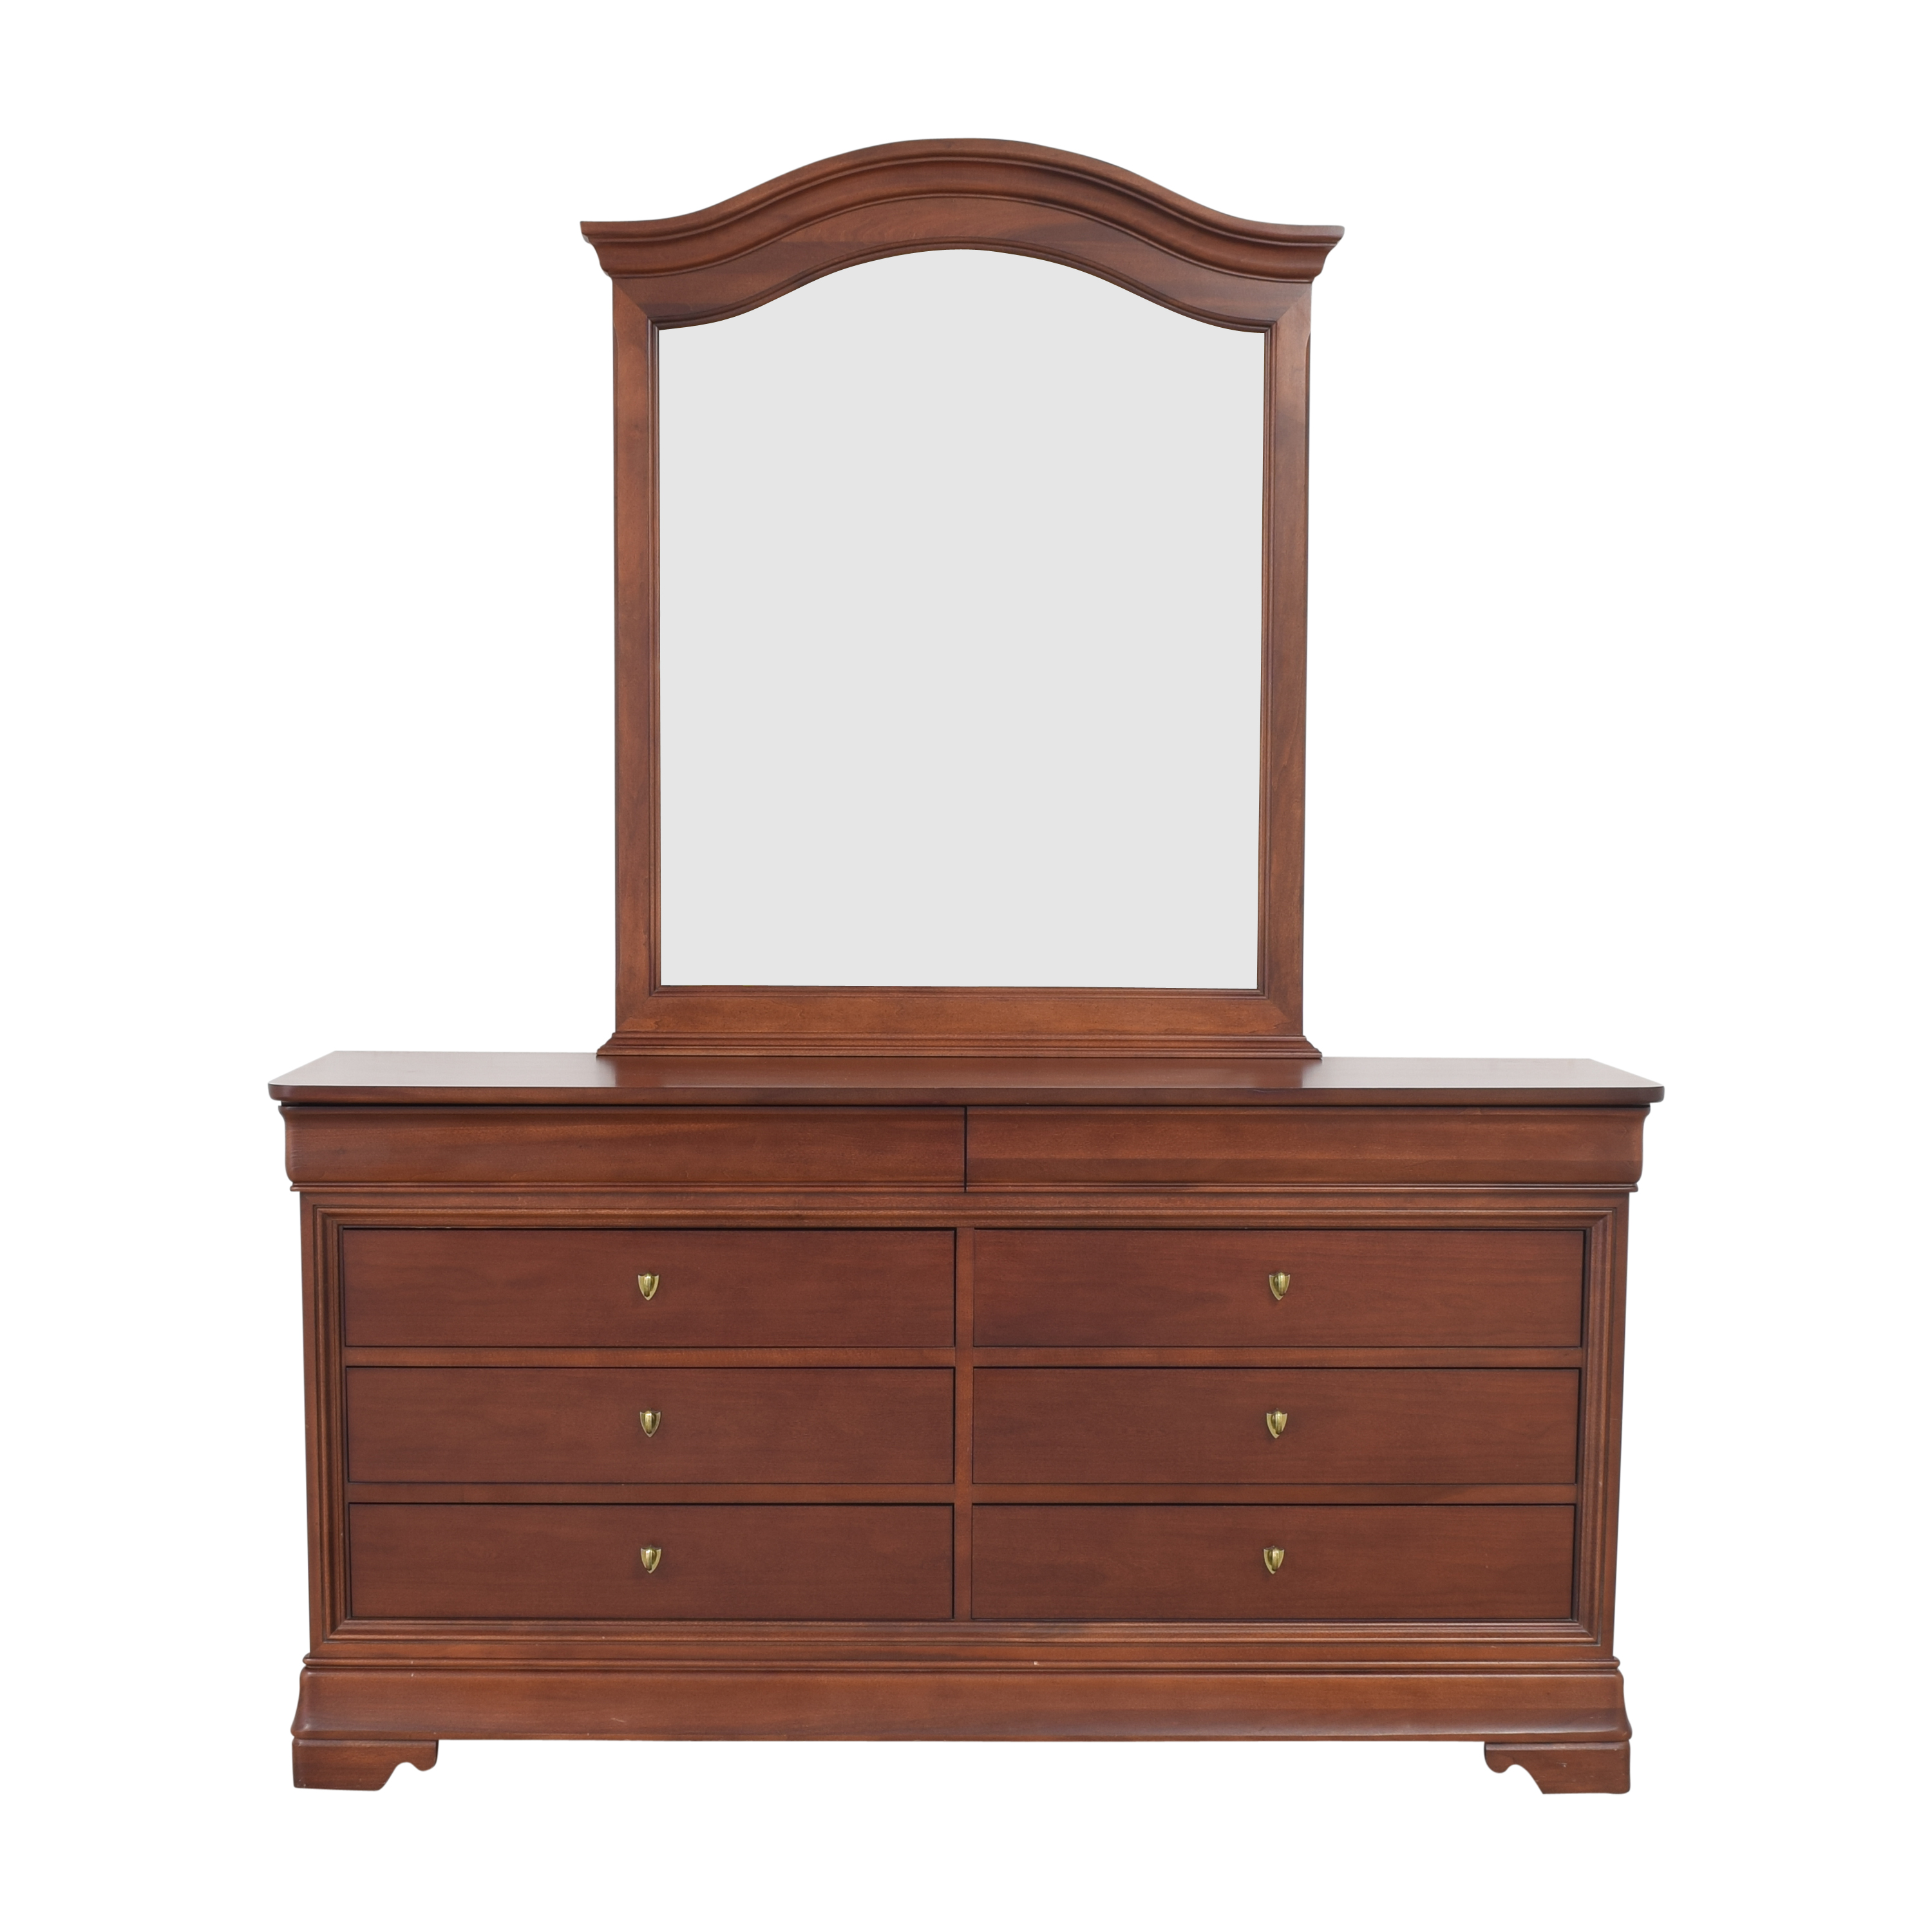 Thomasville Thomasville Impressions Martinique Dresser with Mirror coupon